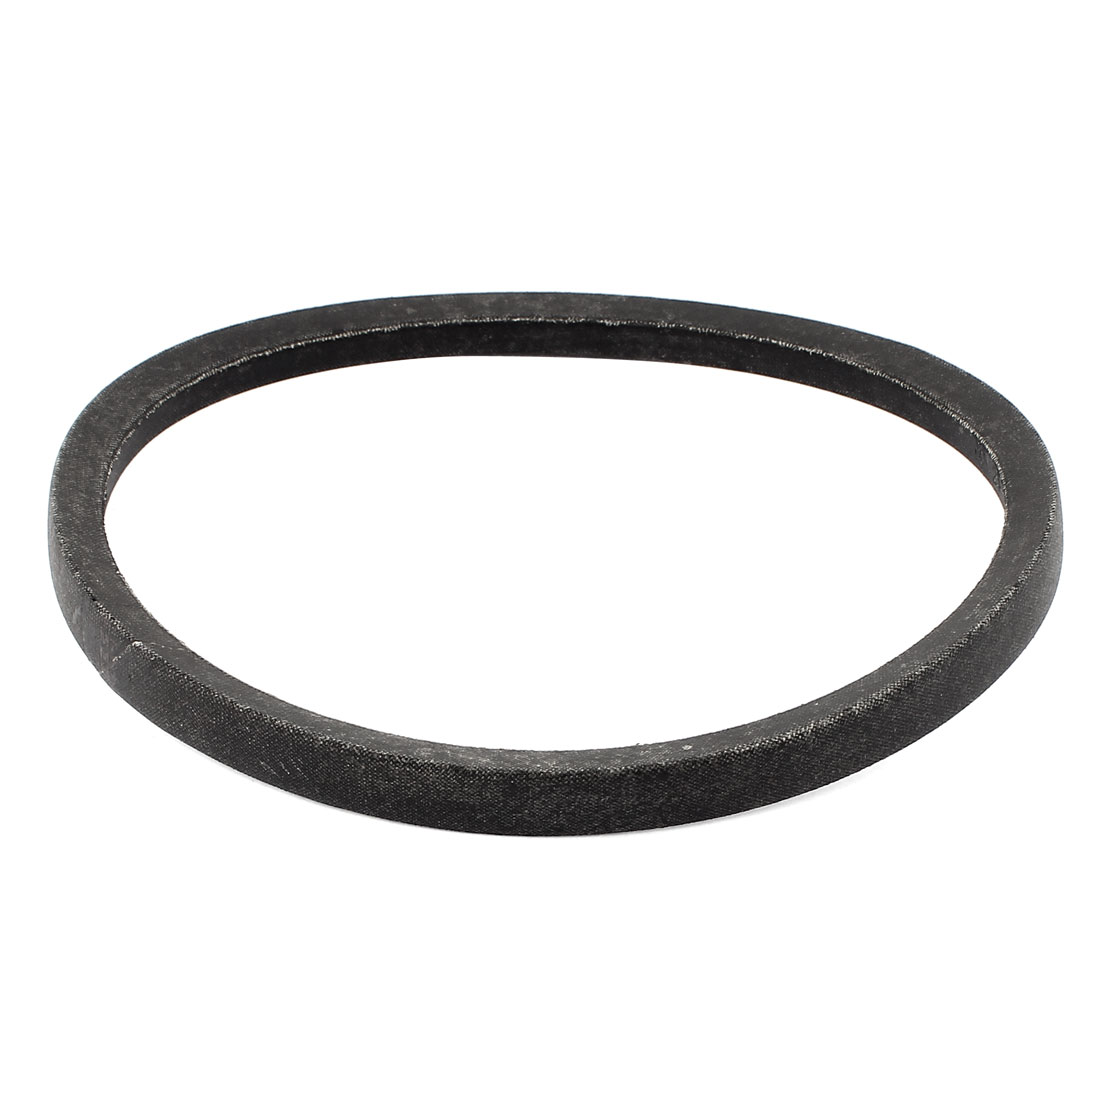 "Washing Machine Drive Rubber V Belt B Section B25 5/8"" x 25"" Black"